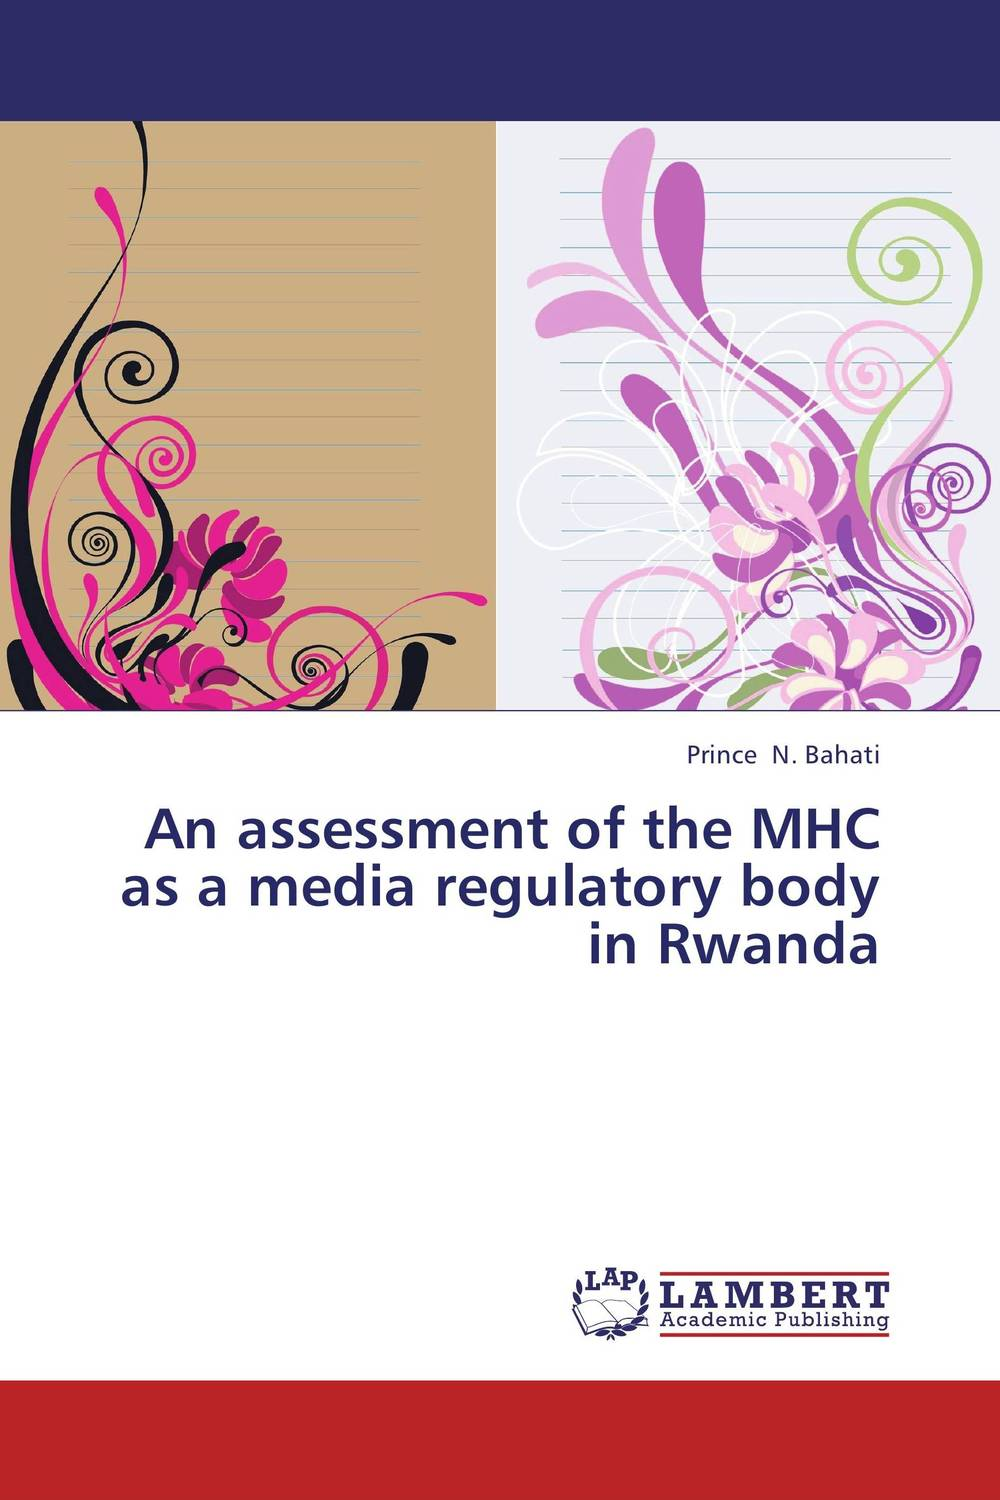 An assessment of the MHC as a media regulatory body in Rwanda